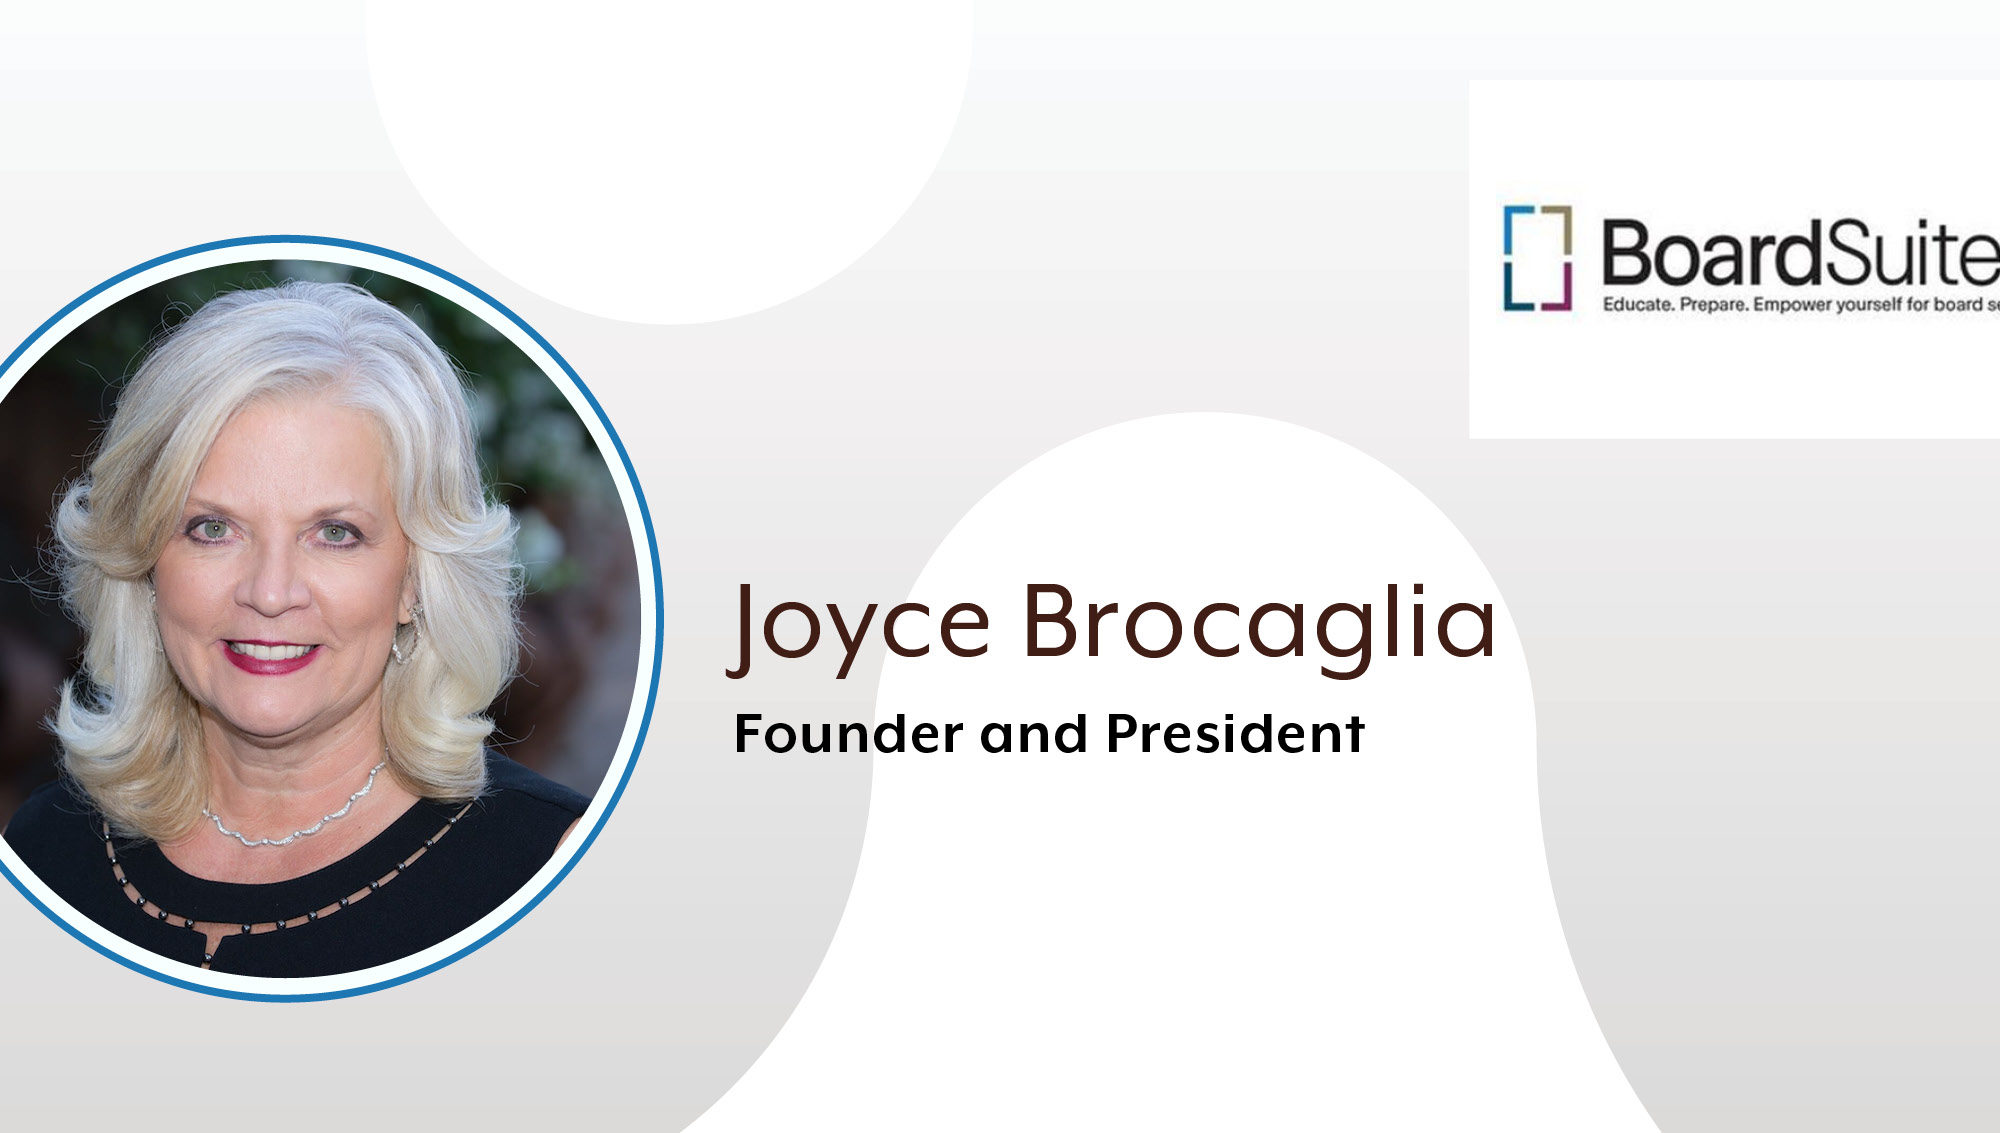 BoardSuited President Joyce Brocaglia